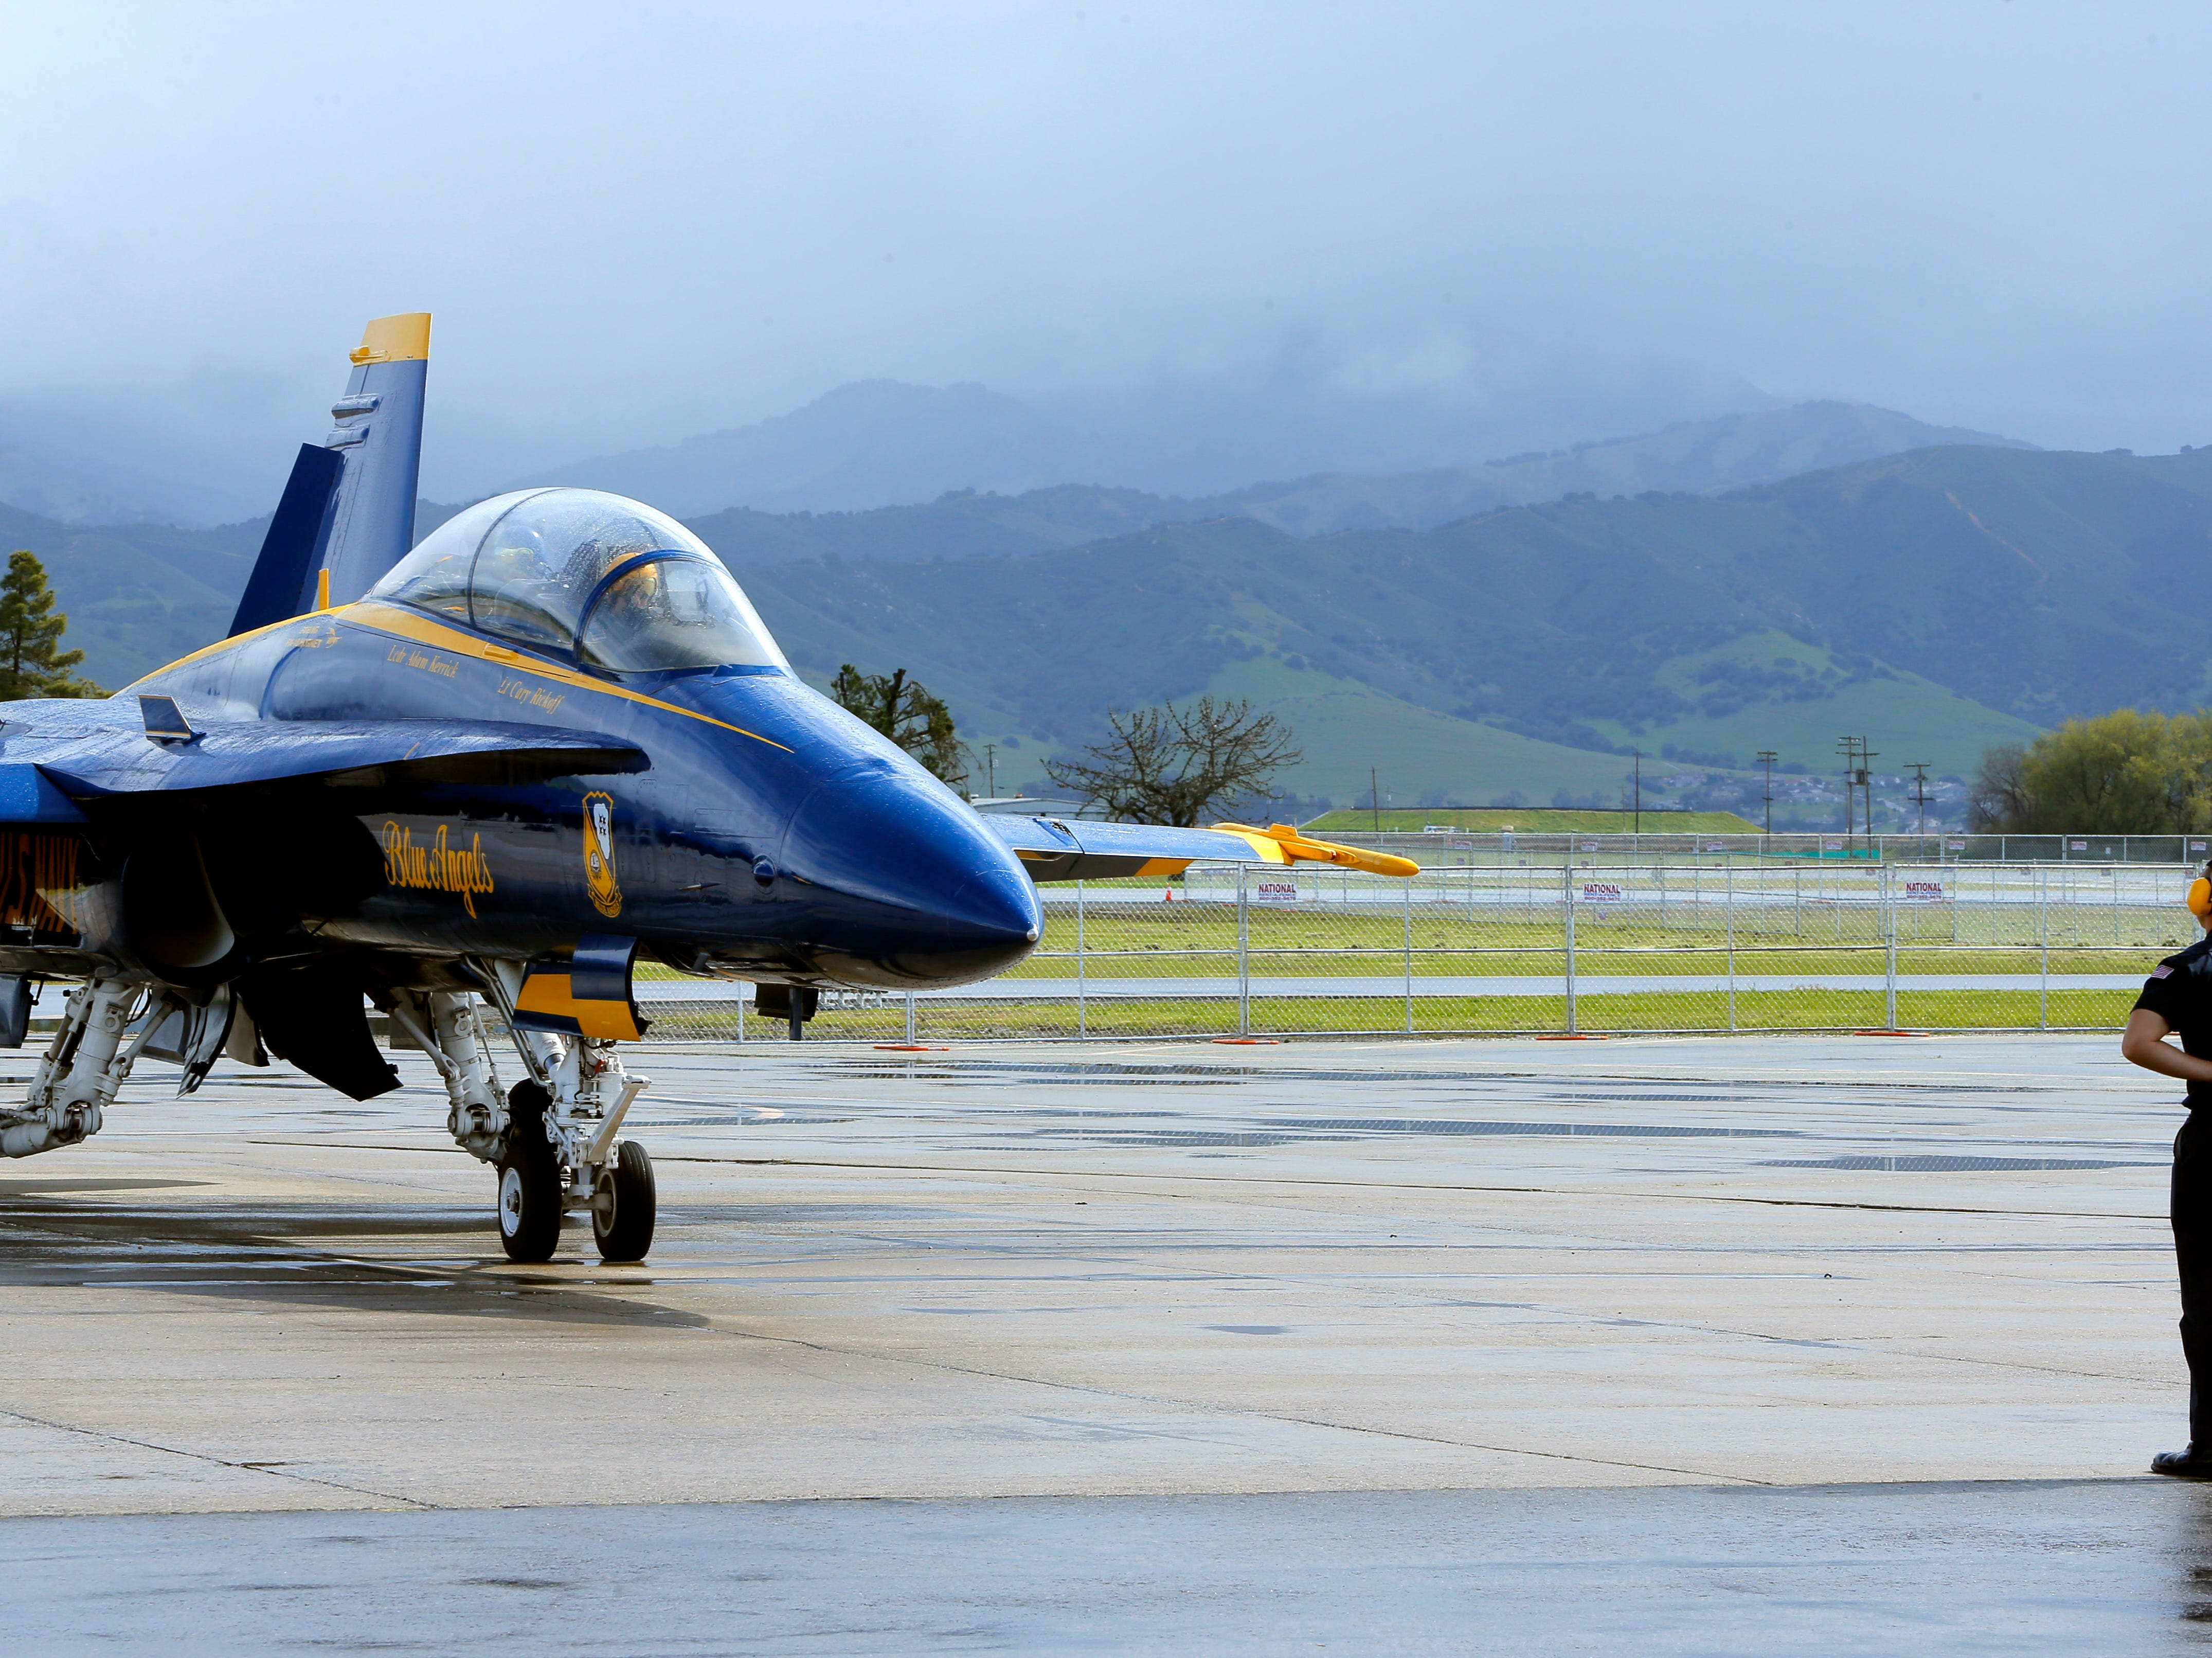 U.S. Navy Petty Officer Kyle Wood prepares to guide a Blue Angels jet fighter, which has Salinas police officer Daniel Garcia March 20, 2019. Garcia was selected to ride with the Blue Angels, who are performing in the California International Airshow Salinas.